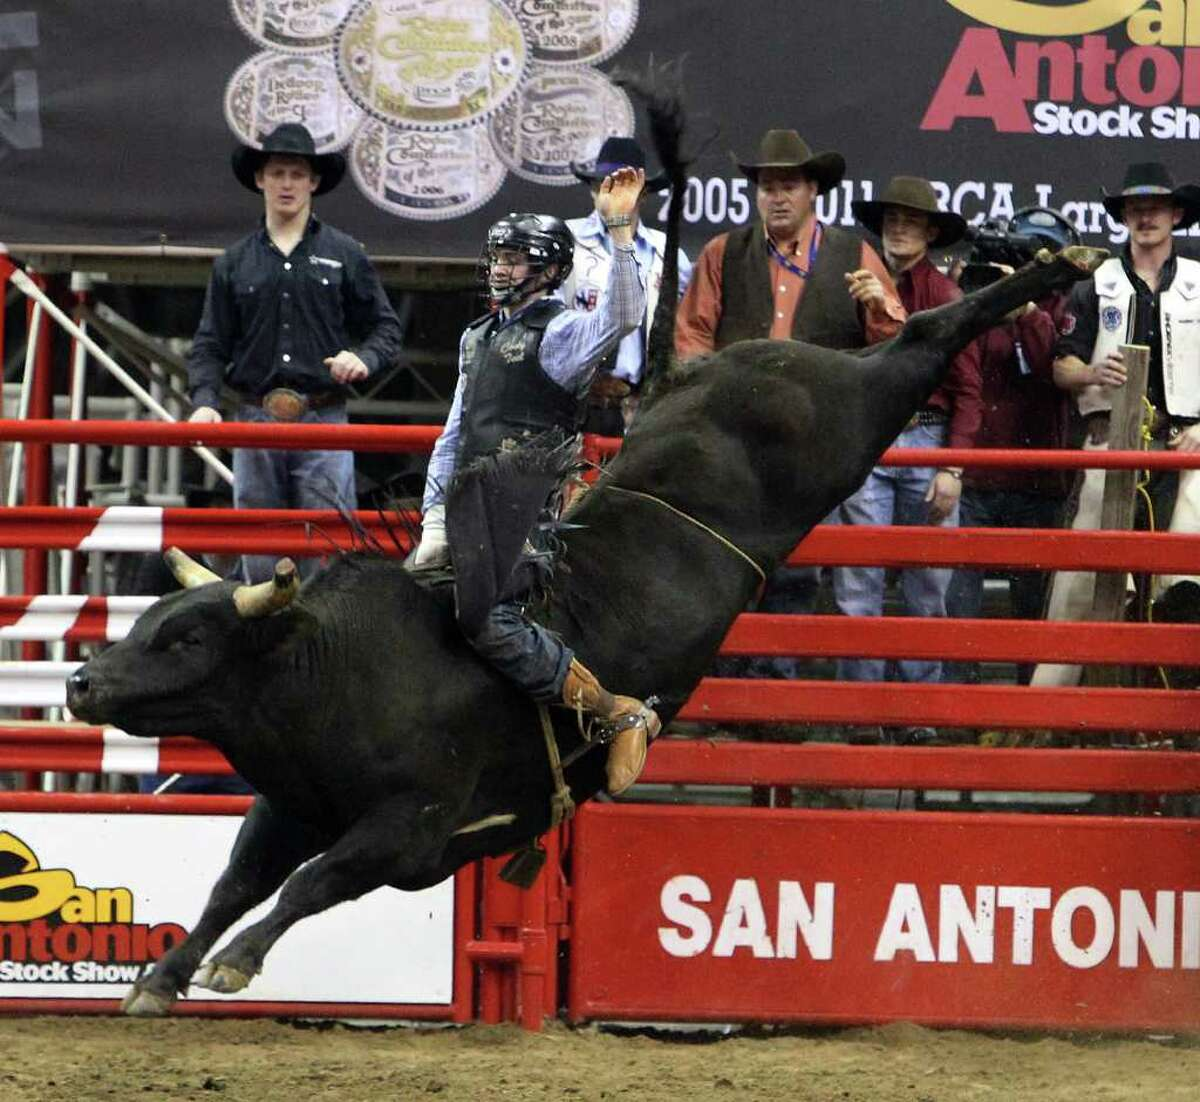 Cody Teel rides a bull named Black Dutch during the bull riding competition at the 2012 San Antonio Stock Show & Rodeo on Saturday, Feb. 11, 2012.